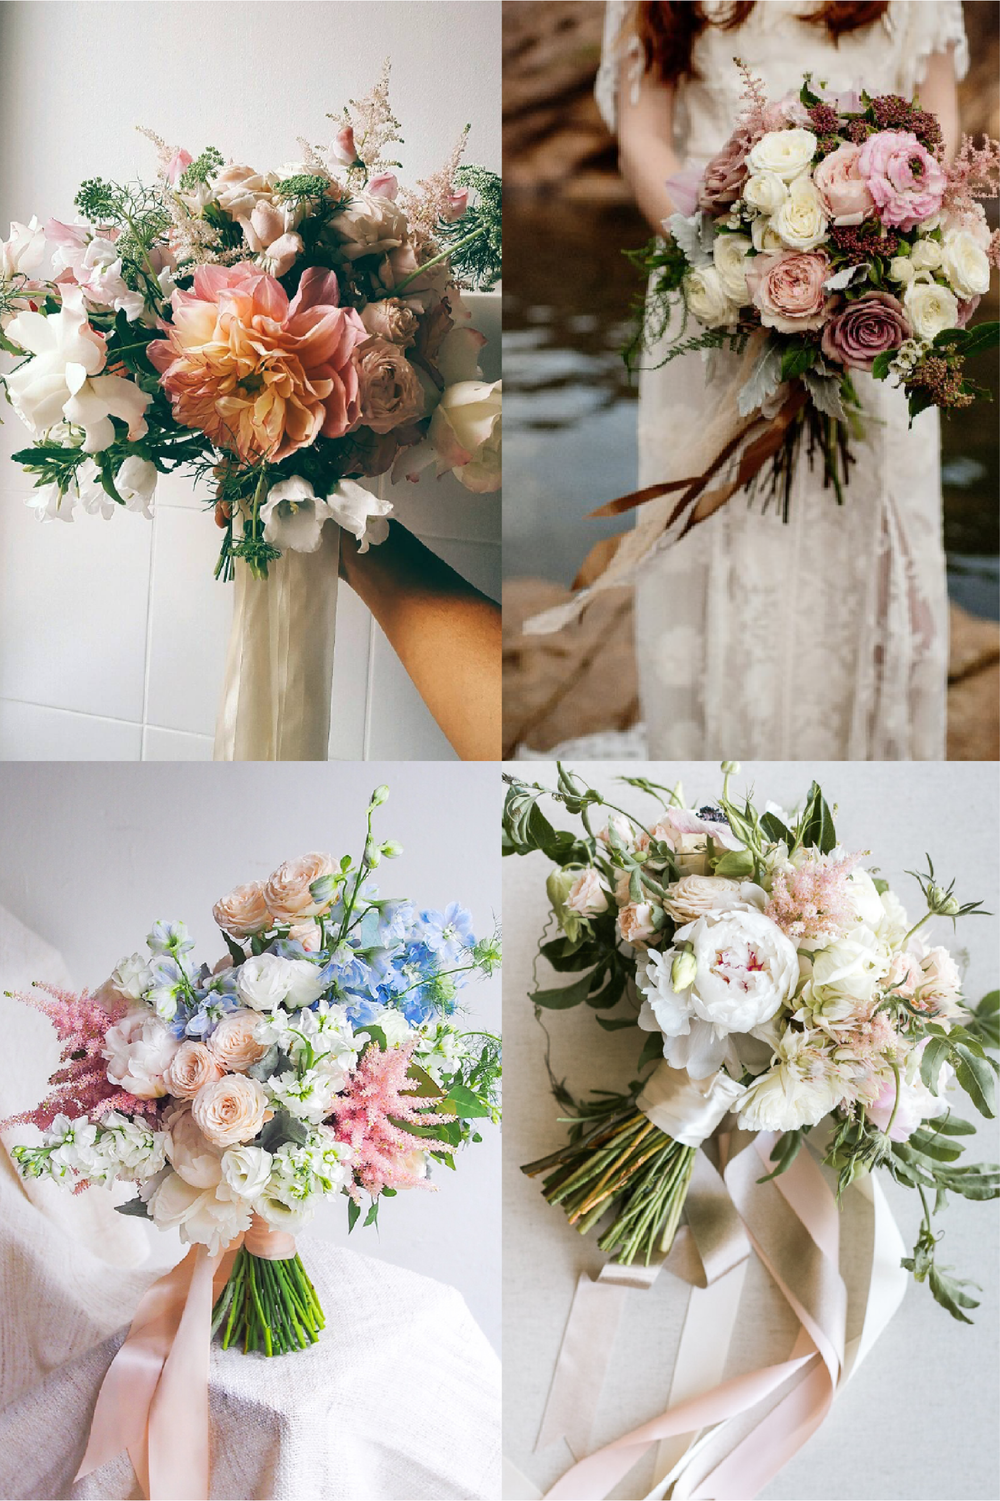 FROM CLOCKWISE, FROM TOP LEFT: FLOWERS BY LIME TREE BOWER ;  FLOWERS BY  POPPY & WILLOW BLOOM PHOTO BY FIONA VAIL PHOTOGRAPHY; FLOWERS BY CHARMED EVENTS GROUP AND PHOTO BY JASMINE LEE; FLOWERS BY  FLORAL MAGIC